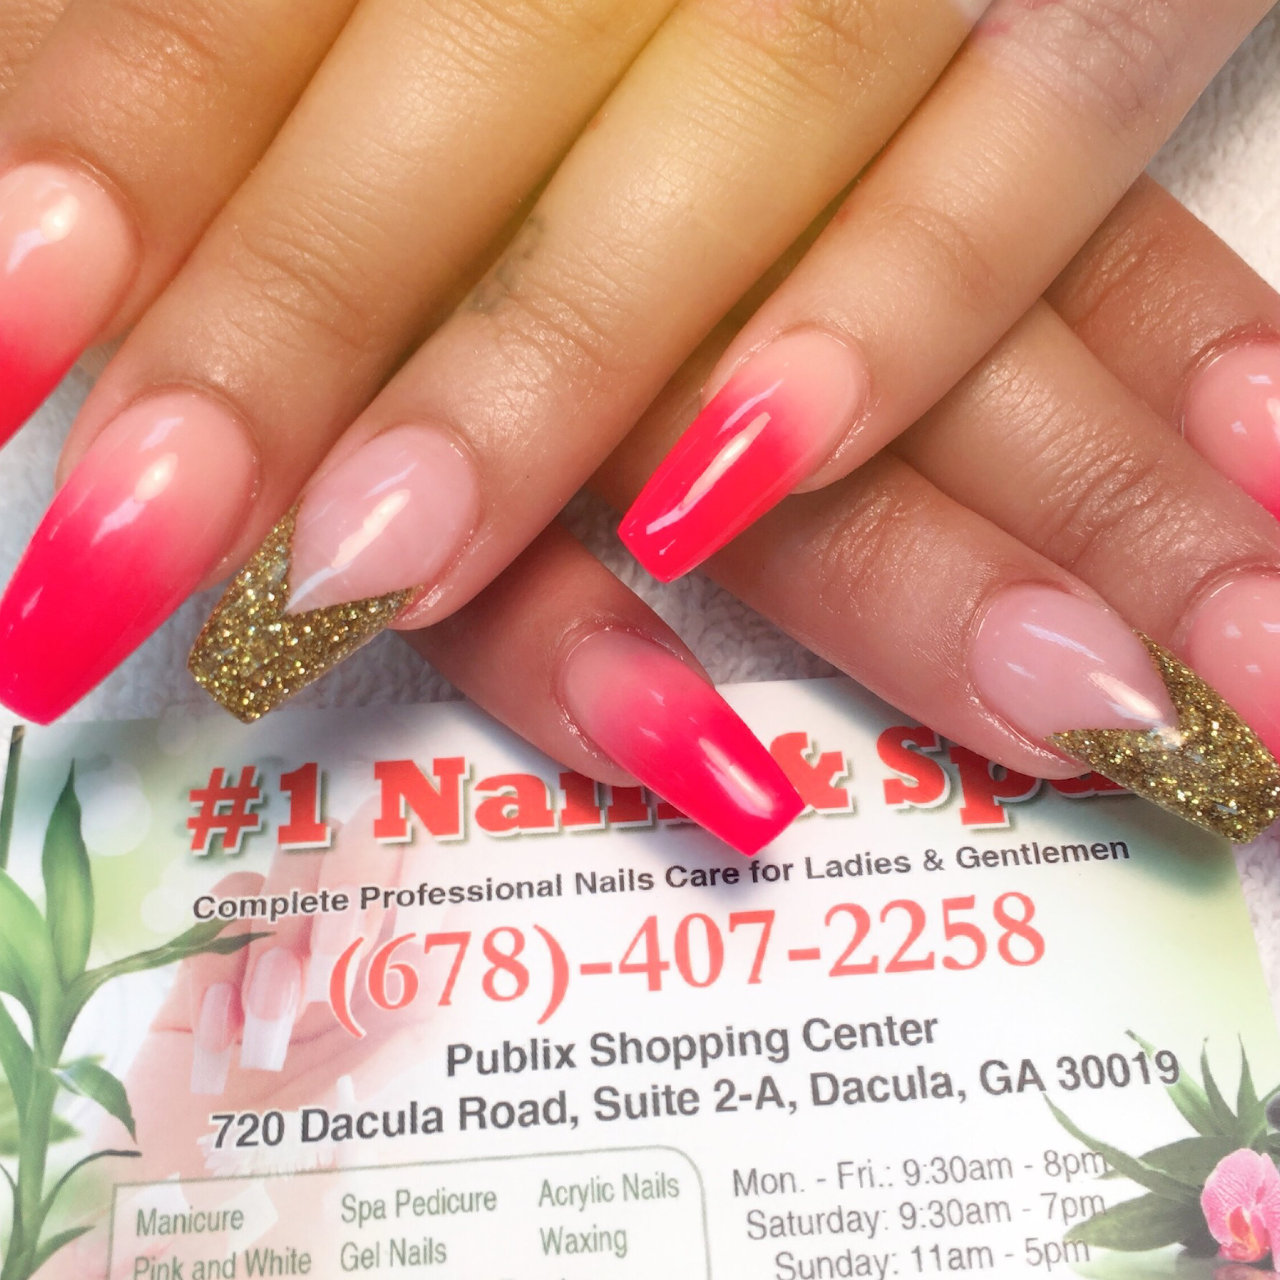 Number One Nails & Spa - Nail Salon in Dacula